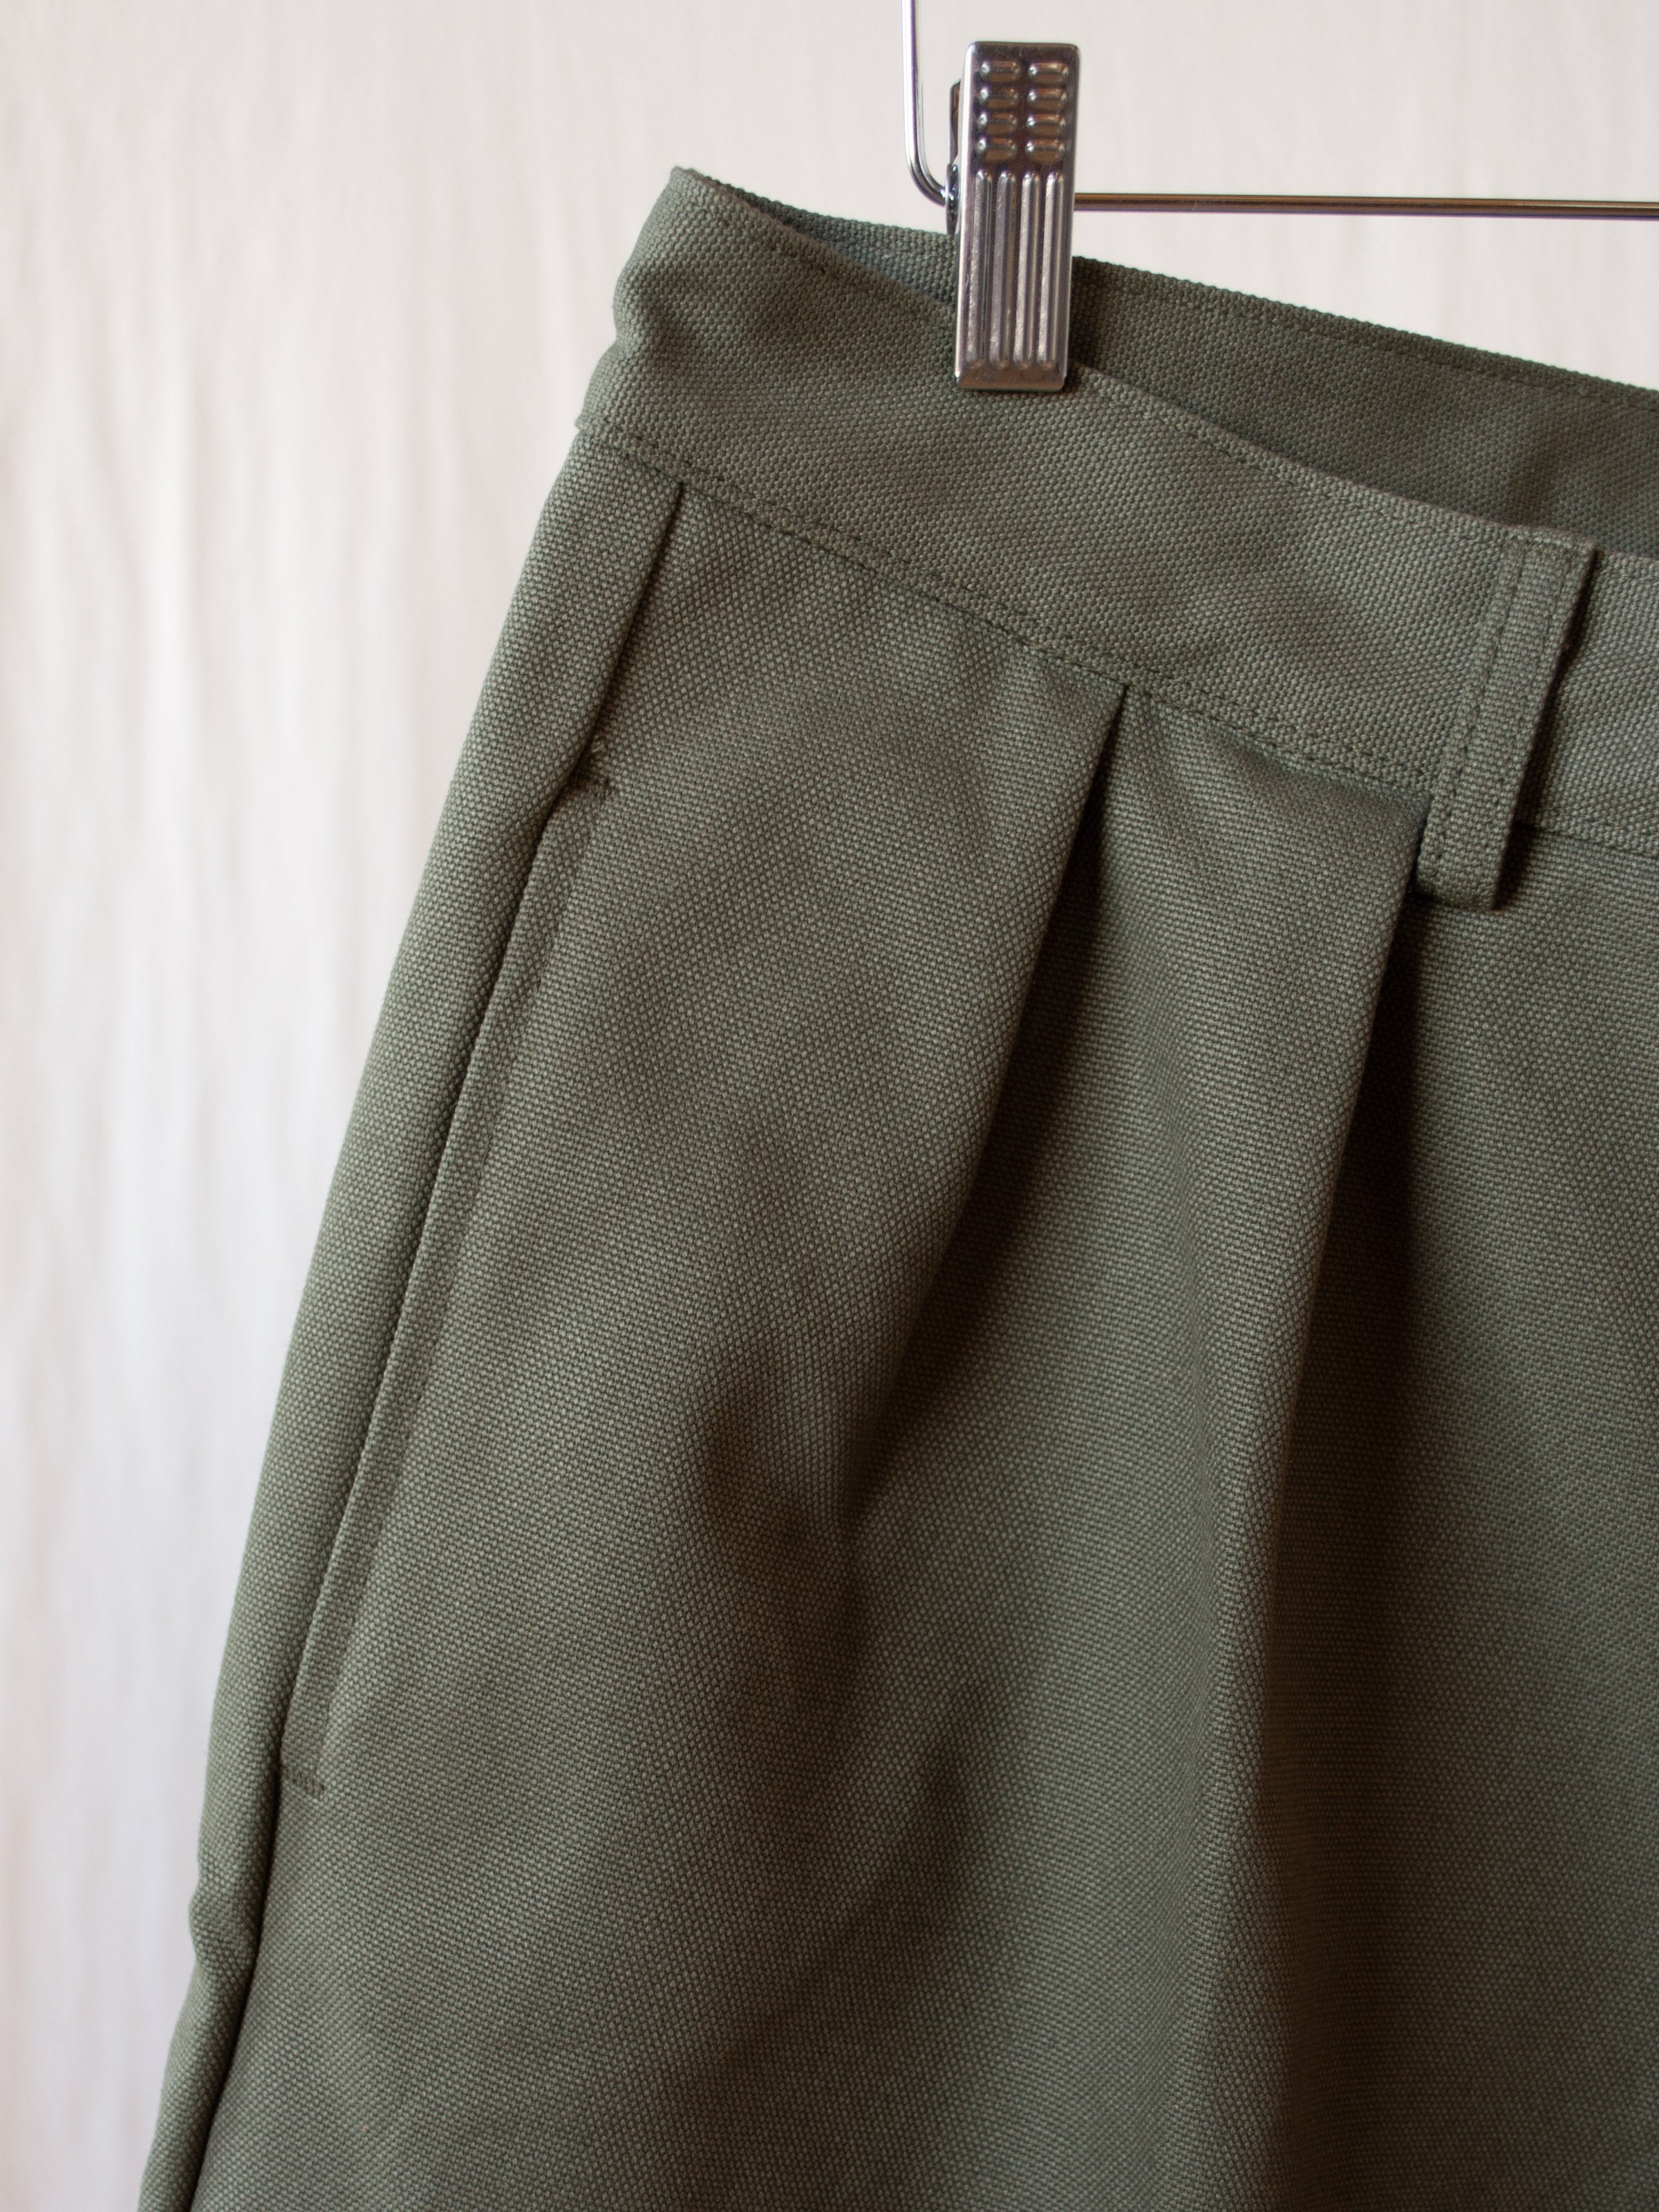 Namu Shop - paa Double Pleat Shorts - Olive